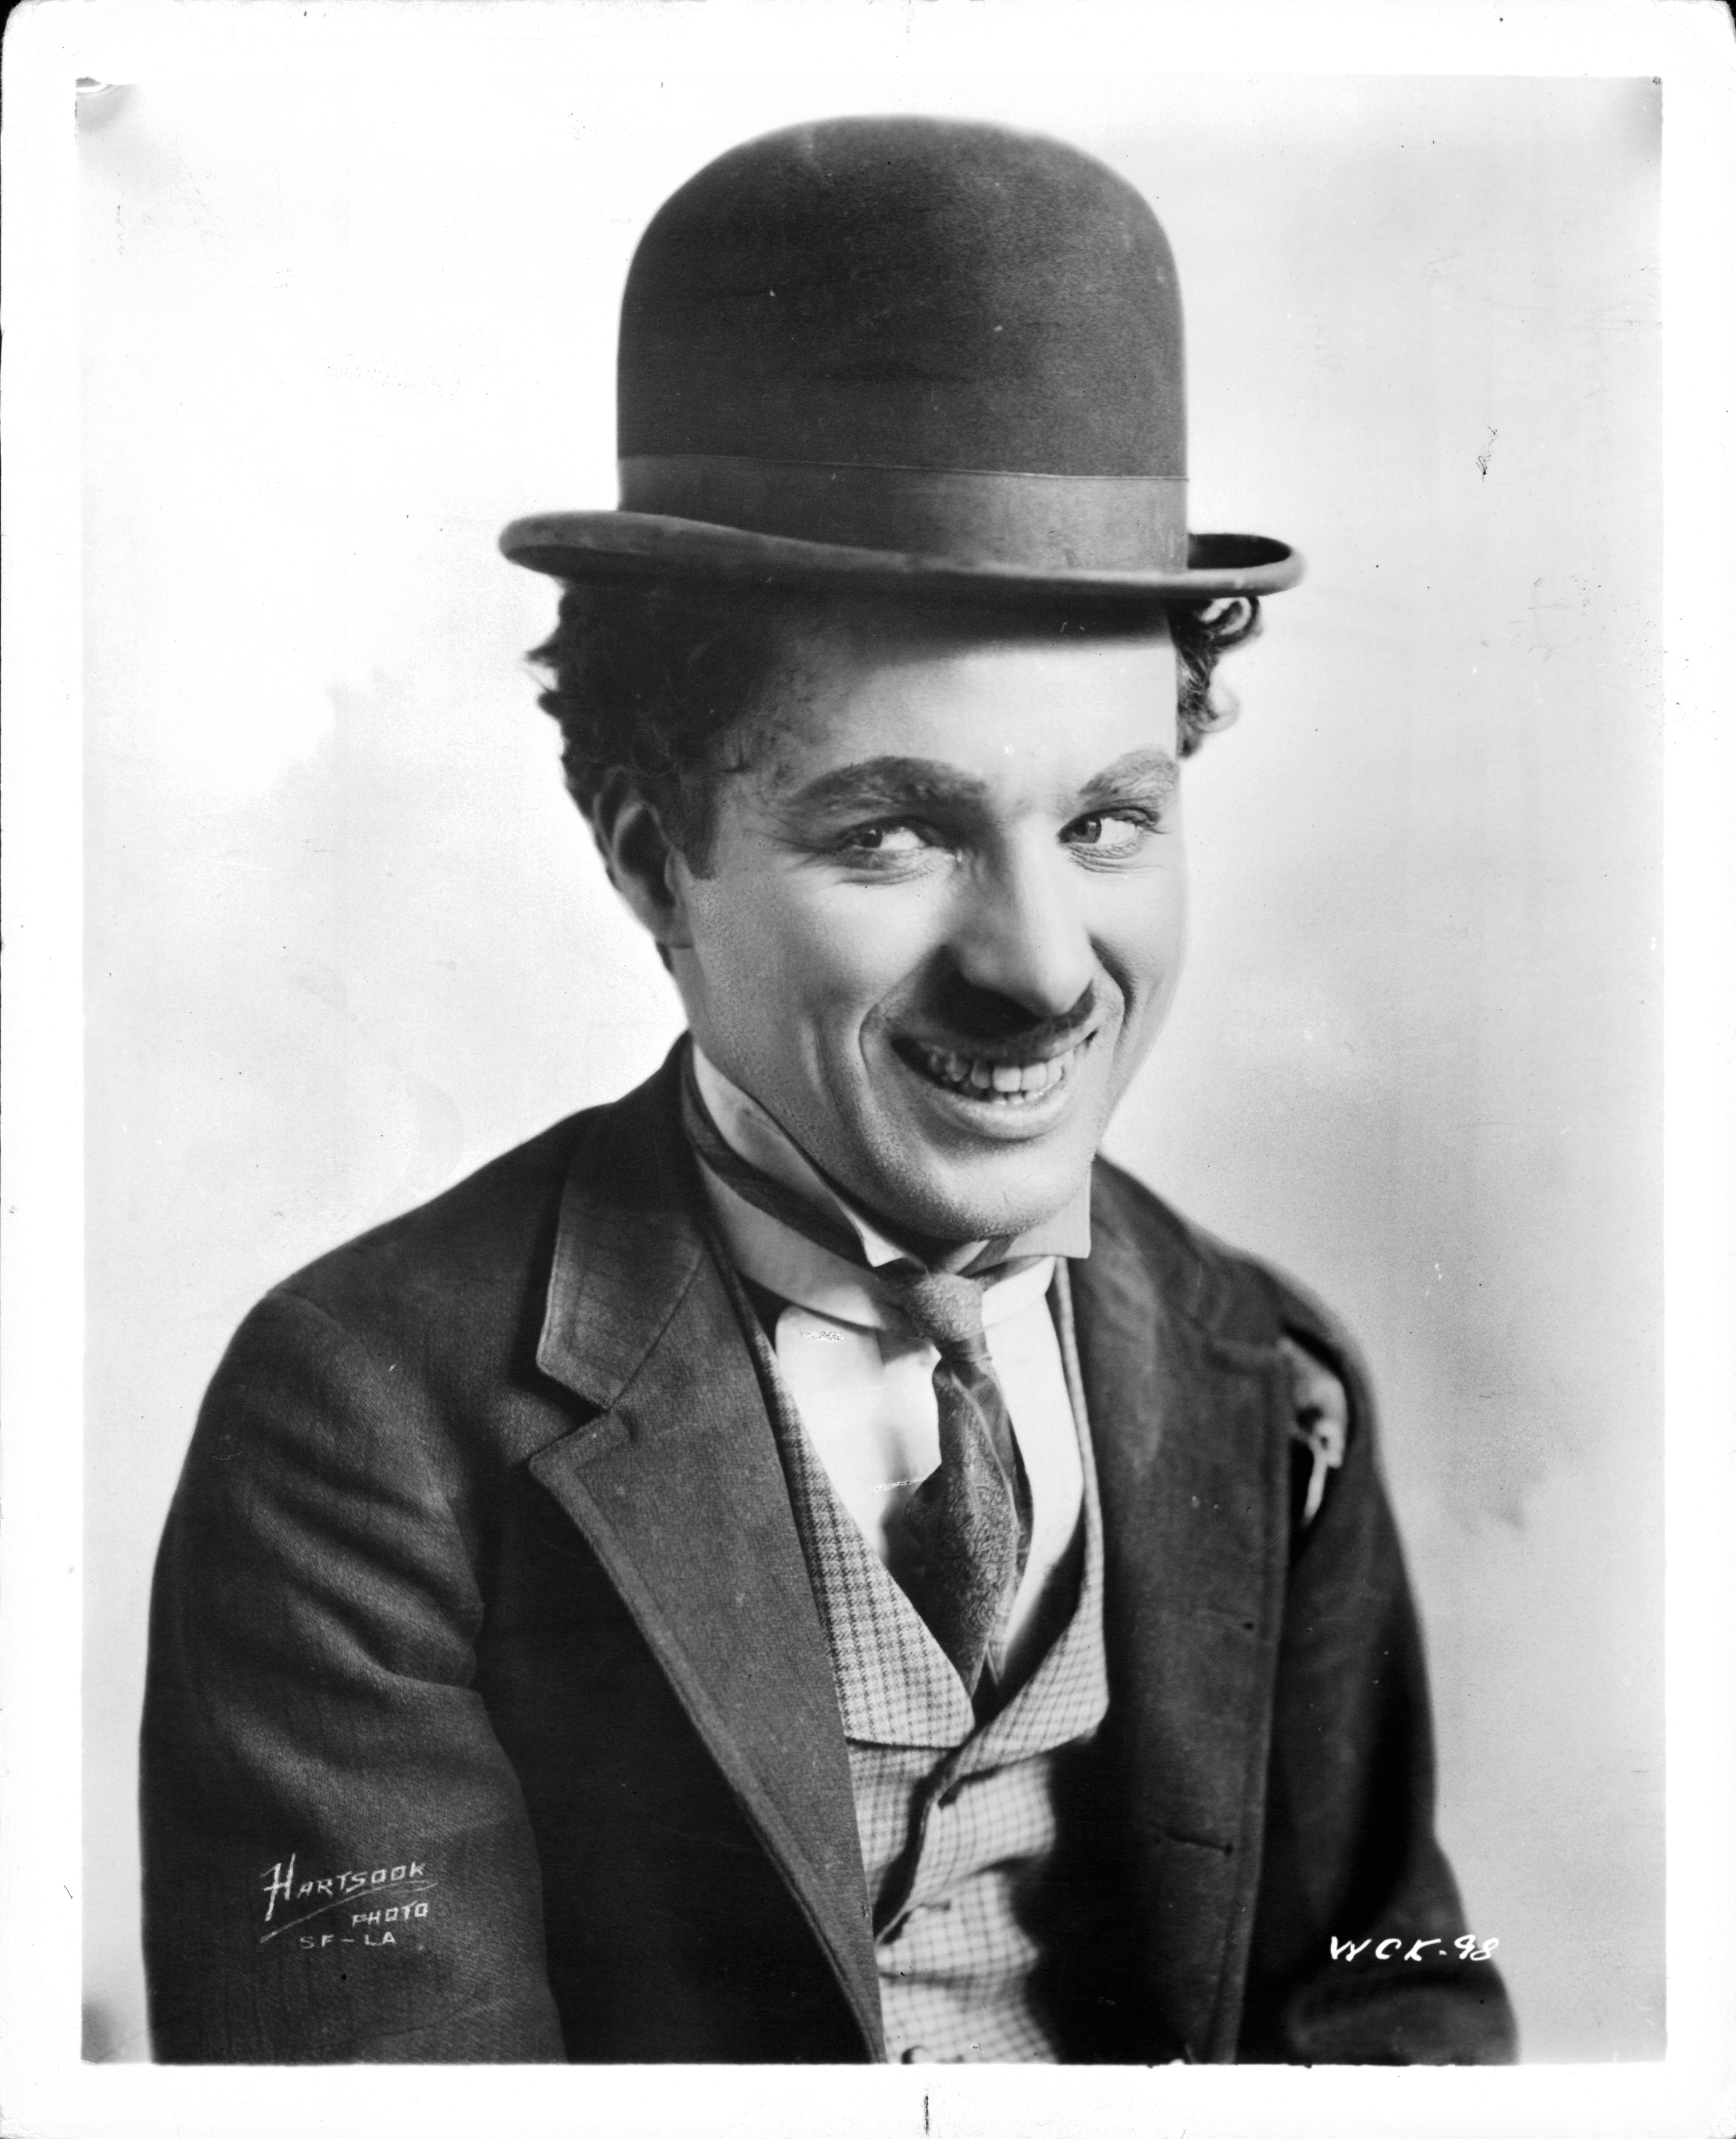 Image Source: Getty Images/Portrait of Charlie Chaplin